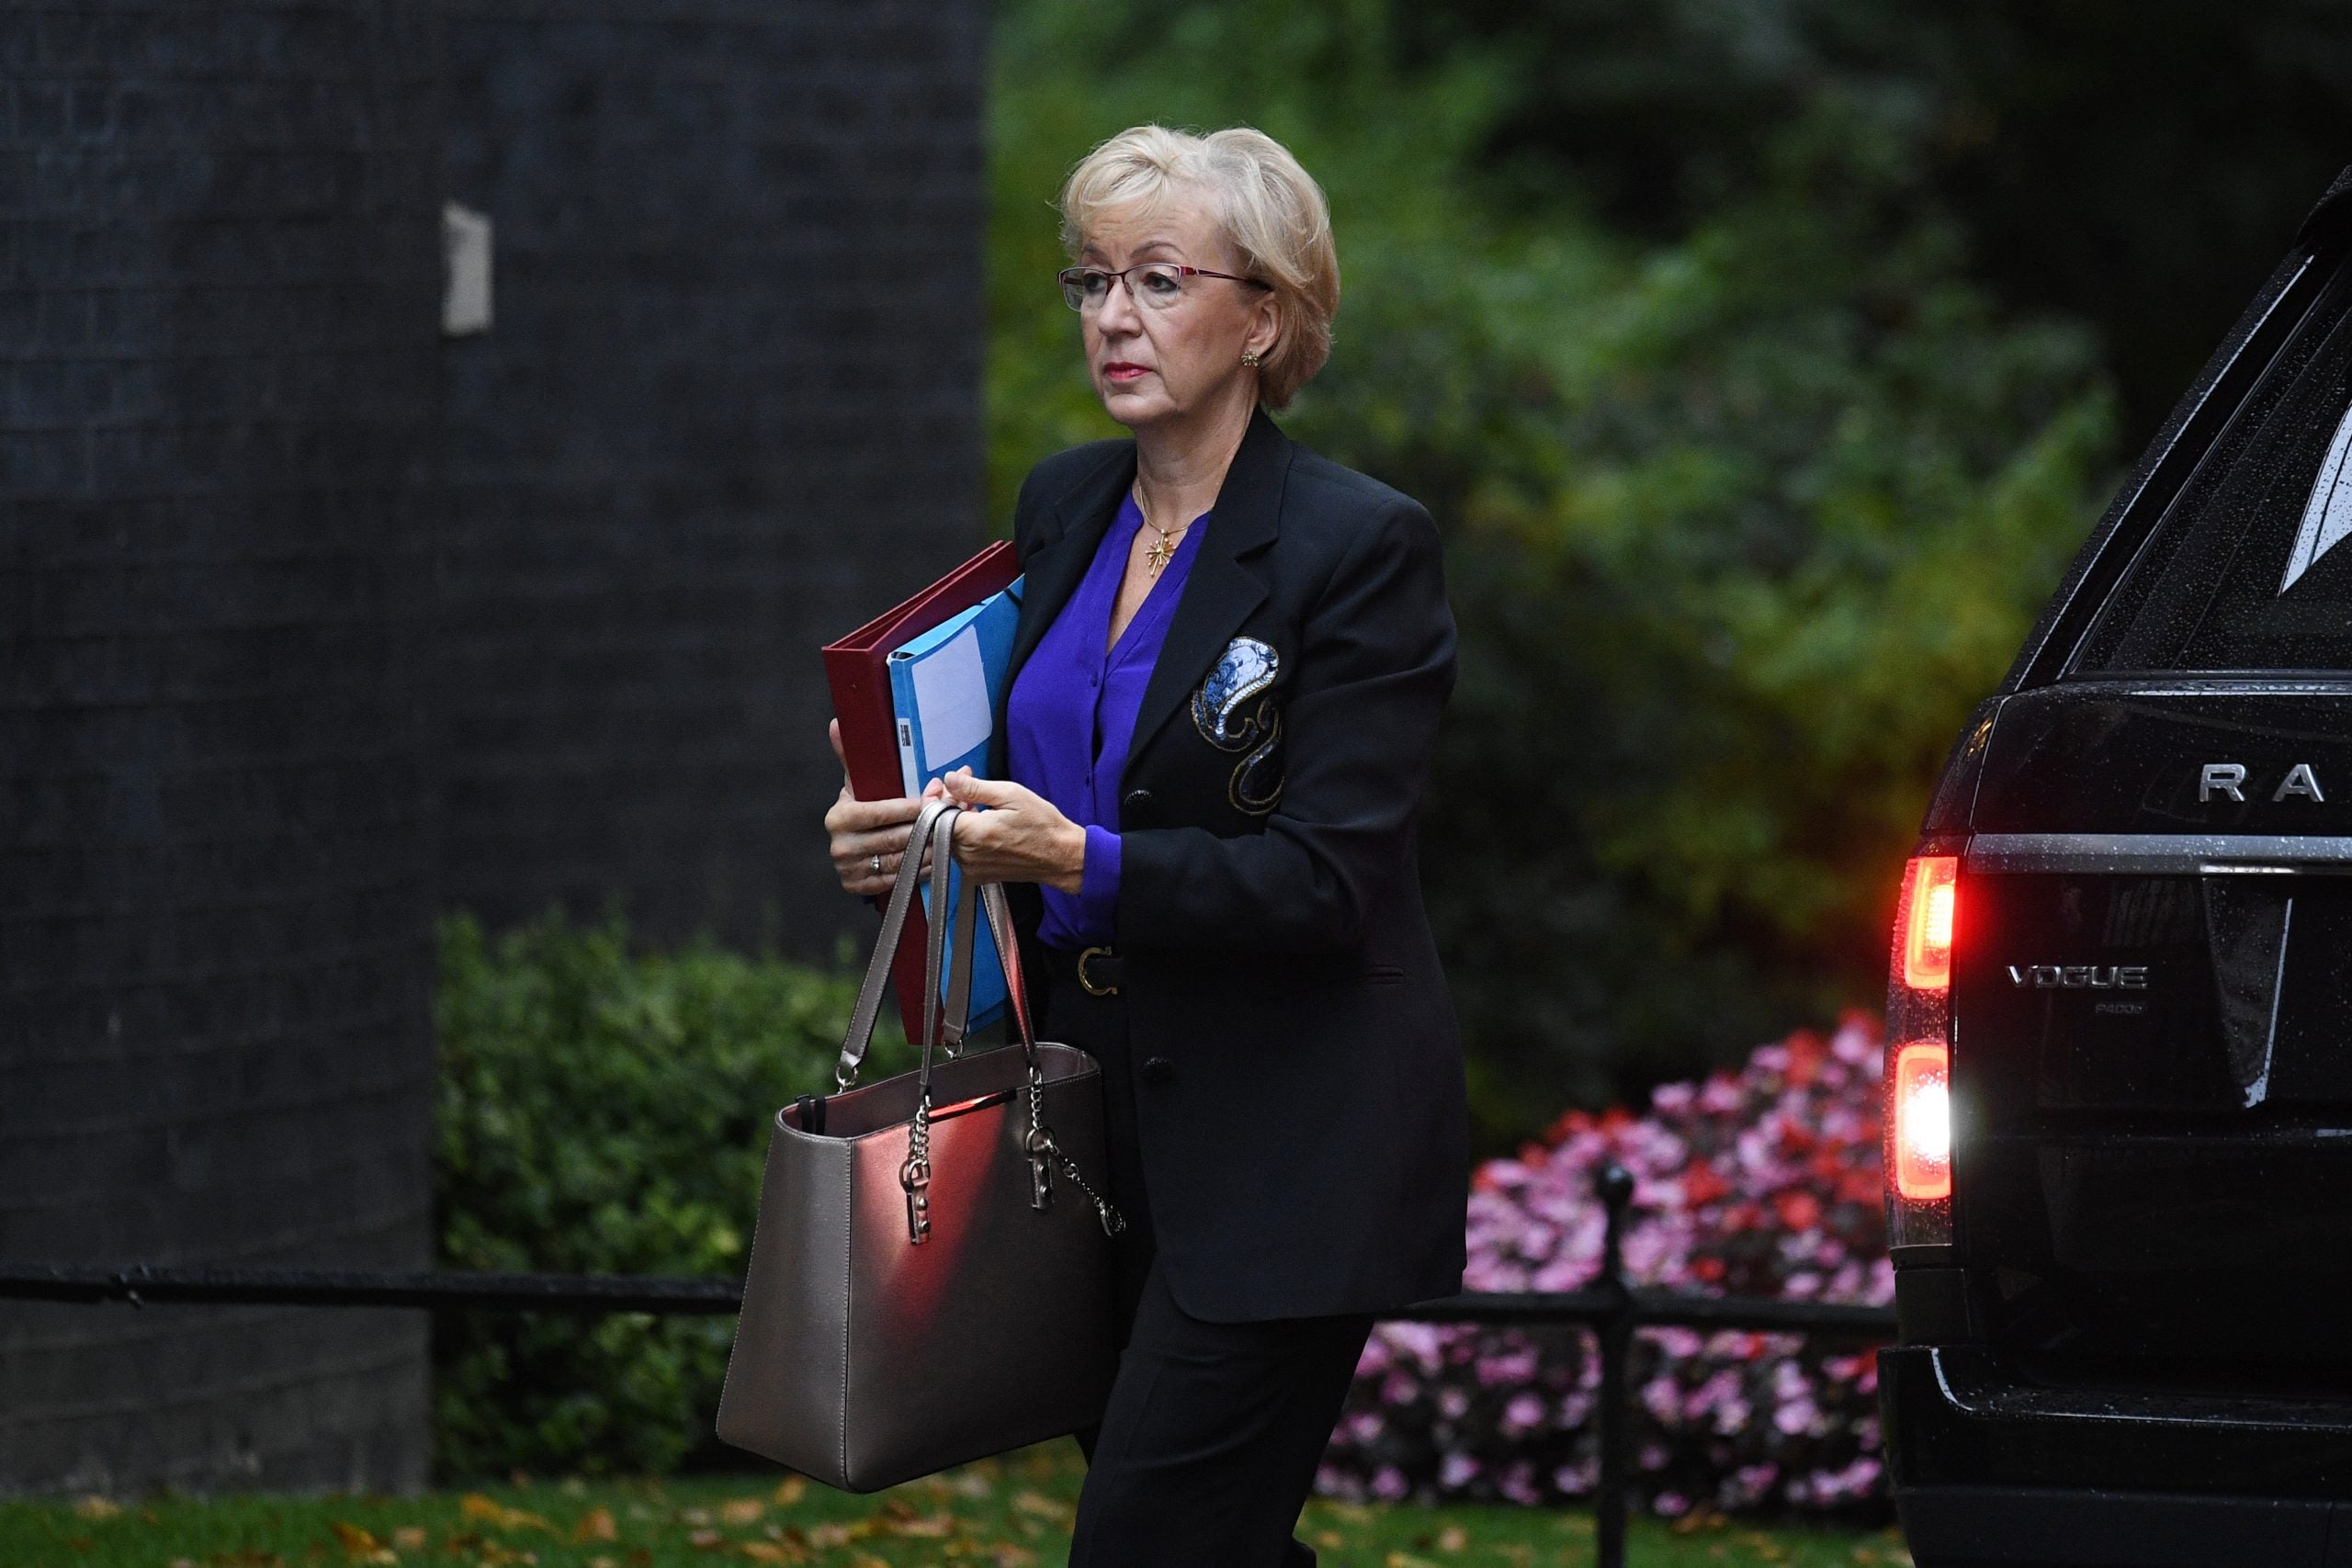 Commons Confidential: Andrea Leadsom's steely threats